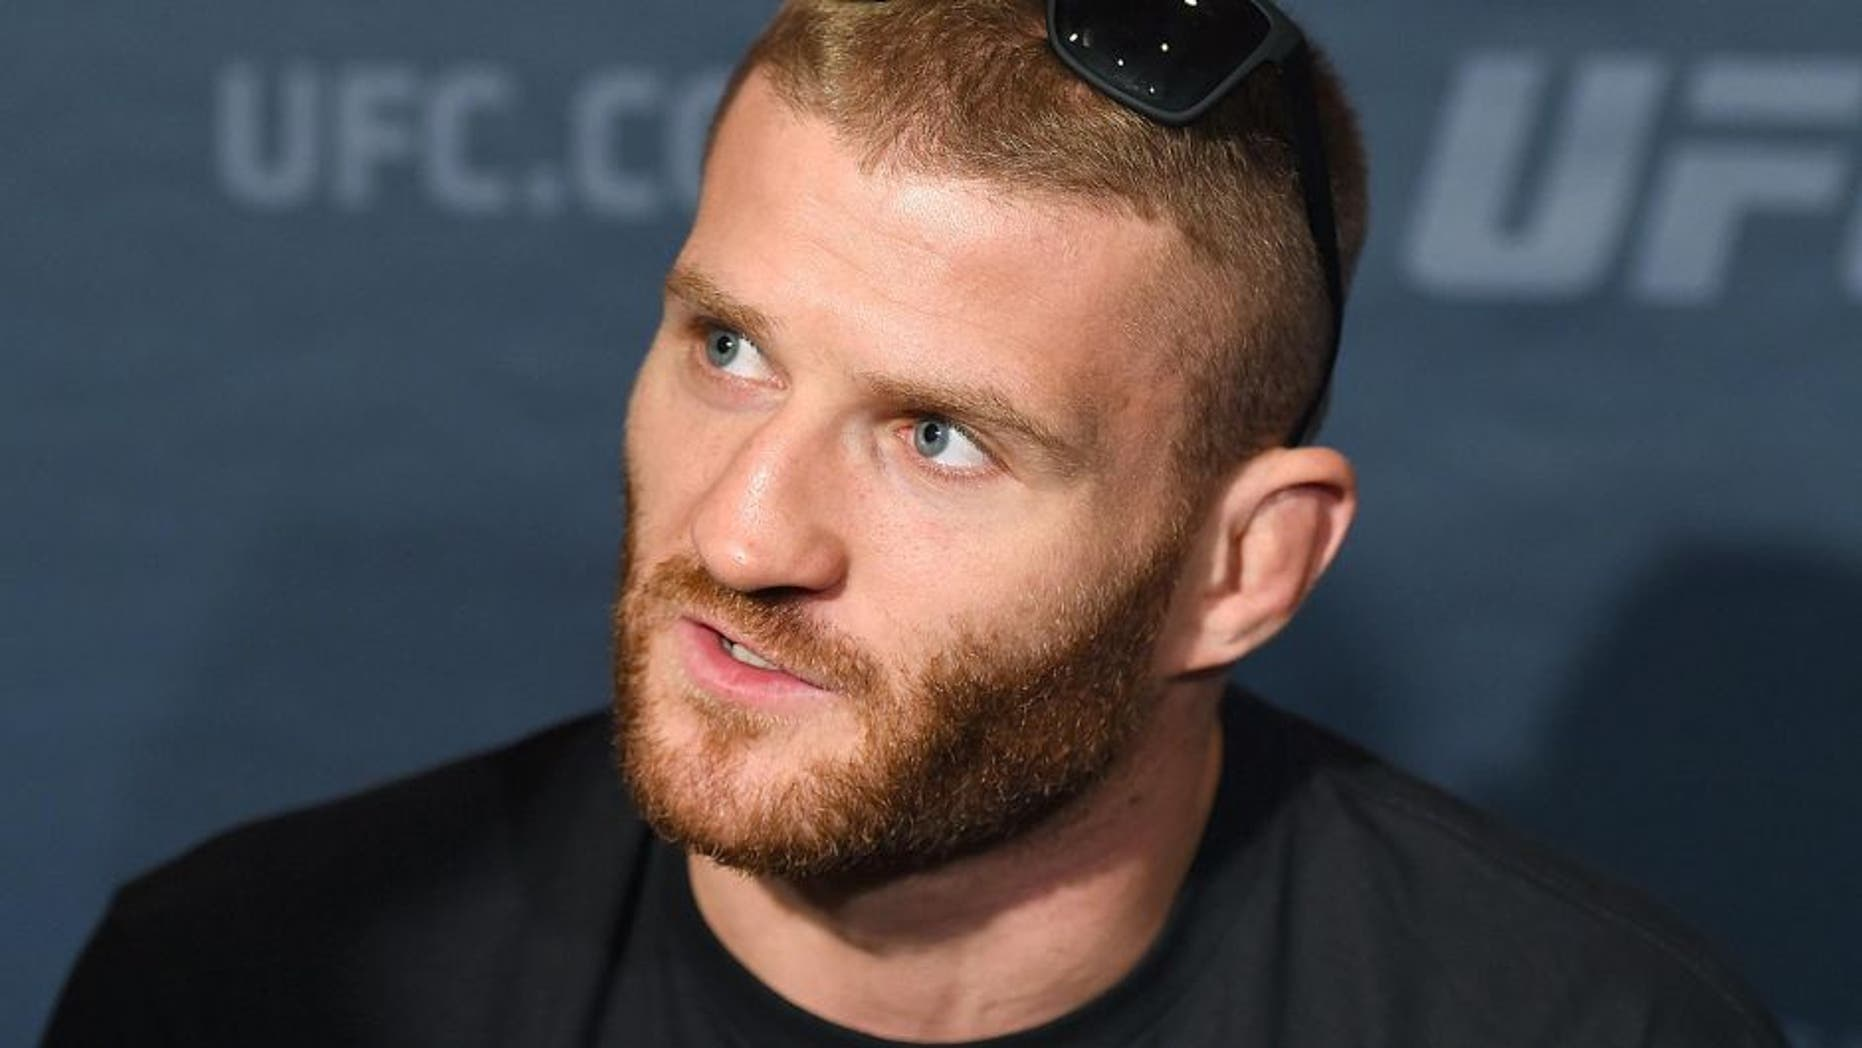 LAS VEGAS, NV - SEPTEMBER 03: Jan Blachowicz of Poland interacts with media during the UFC 191 Ultimate Media Day at MGM Grand Hotel & Casino on September 3, 2015 in Las Vegas, Nevada. (Photo by Josh Hedges/Zuffa LLC/Zuffa LLC via Getty Images)